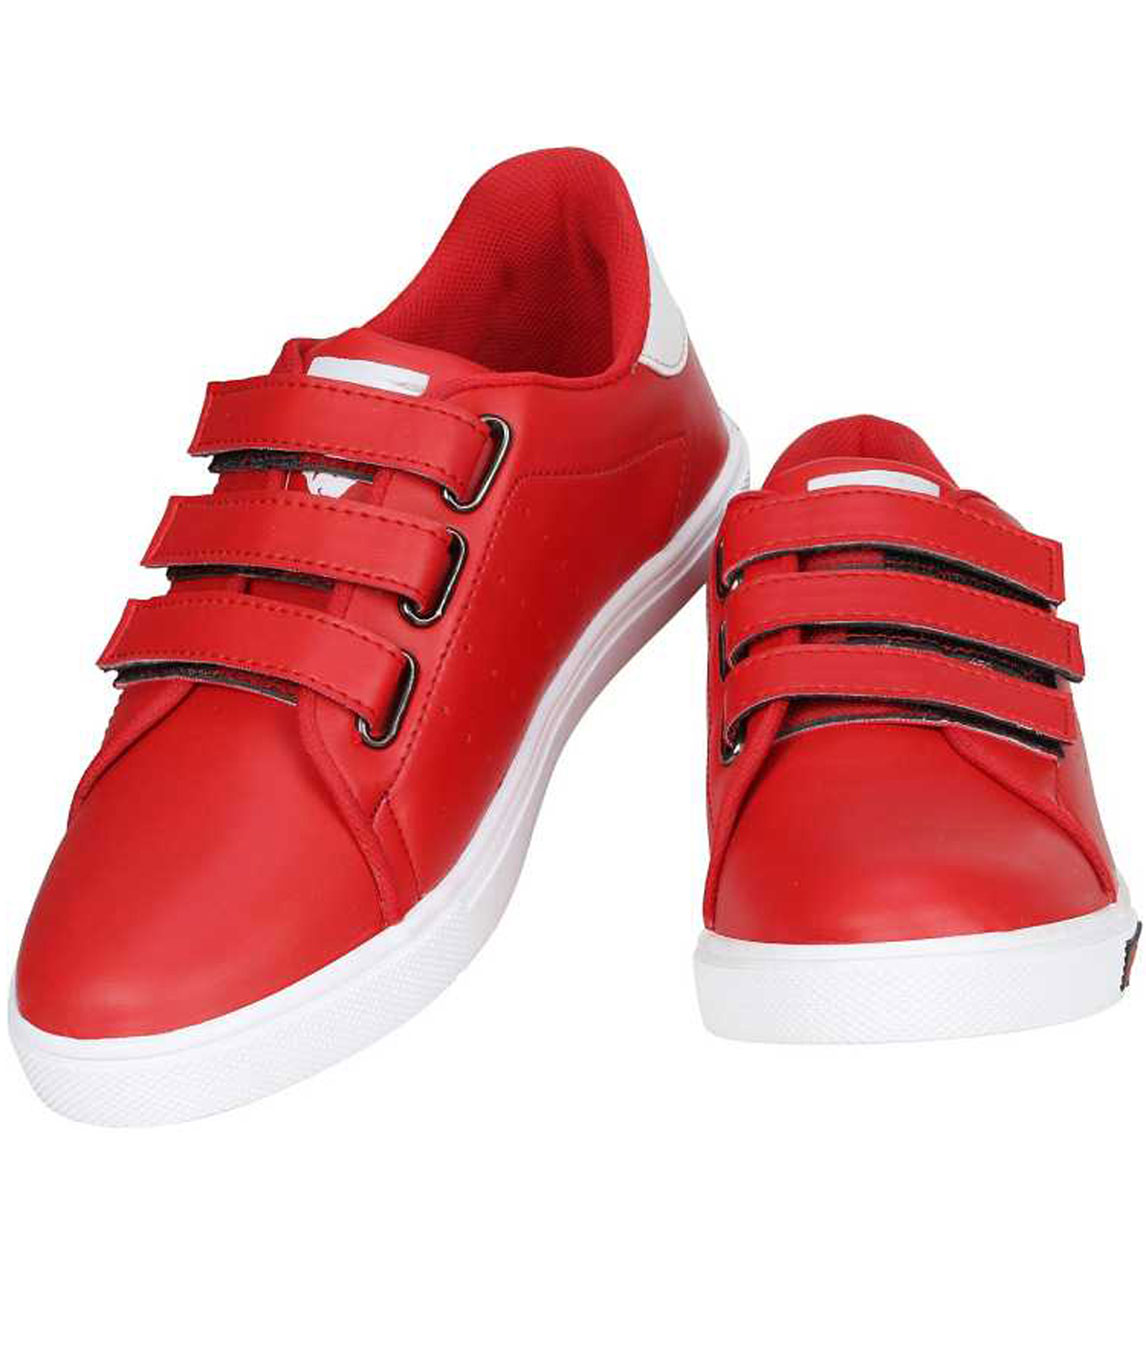 FANSMITH VEL SNEAKERS CANVAS SHOES FOR MEN (RED, WHITE)